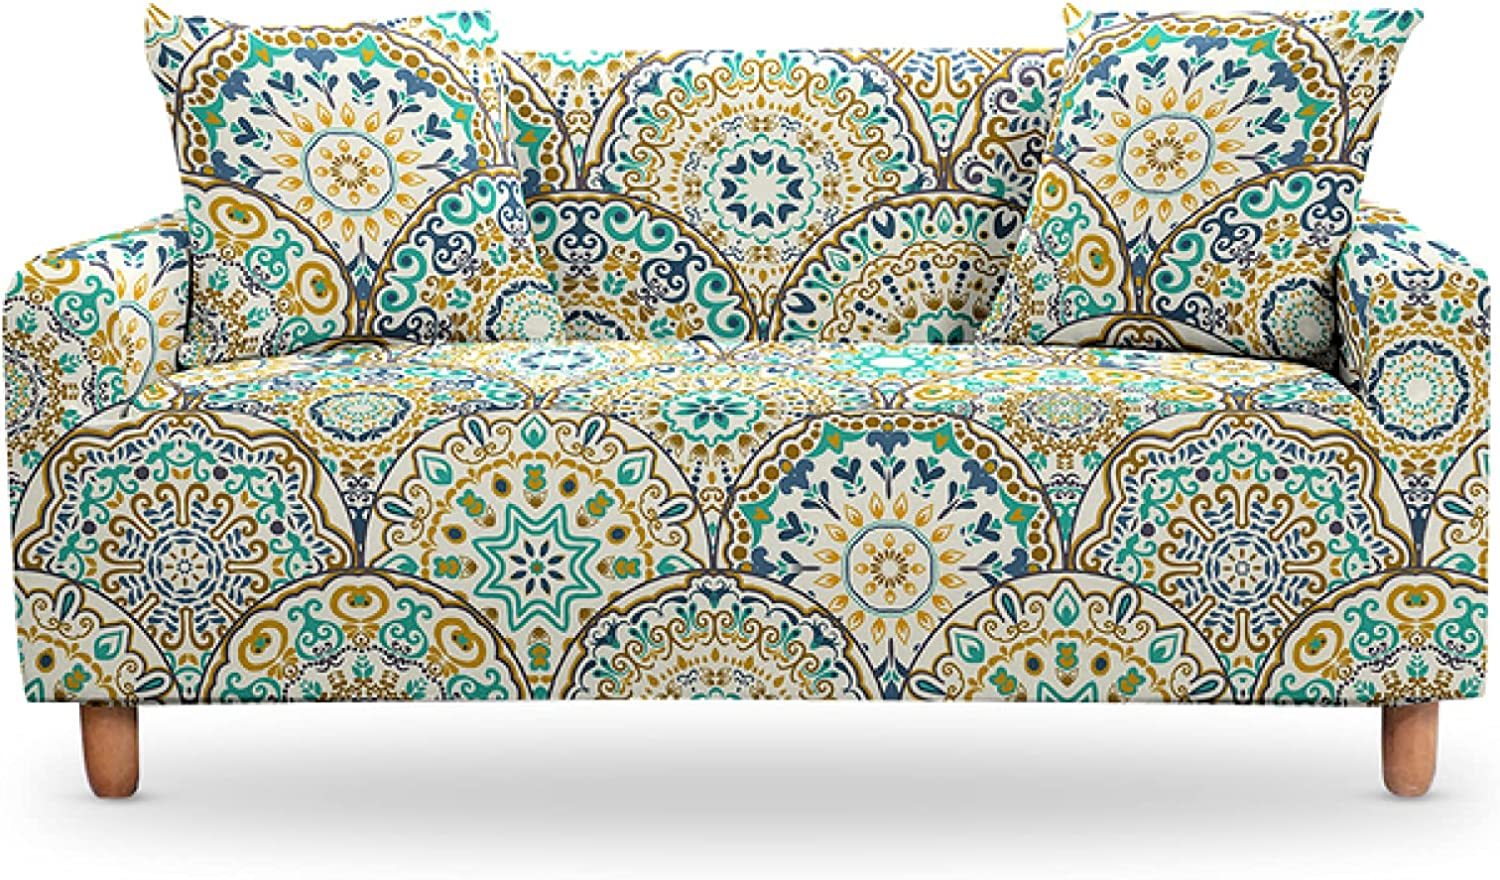 ZHOUMOLIN Max Outlet SALE 41% OFF Couch Sofa Cover for Elastic Living Room Str Slipcover